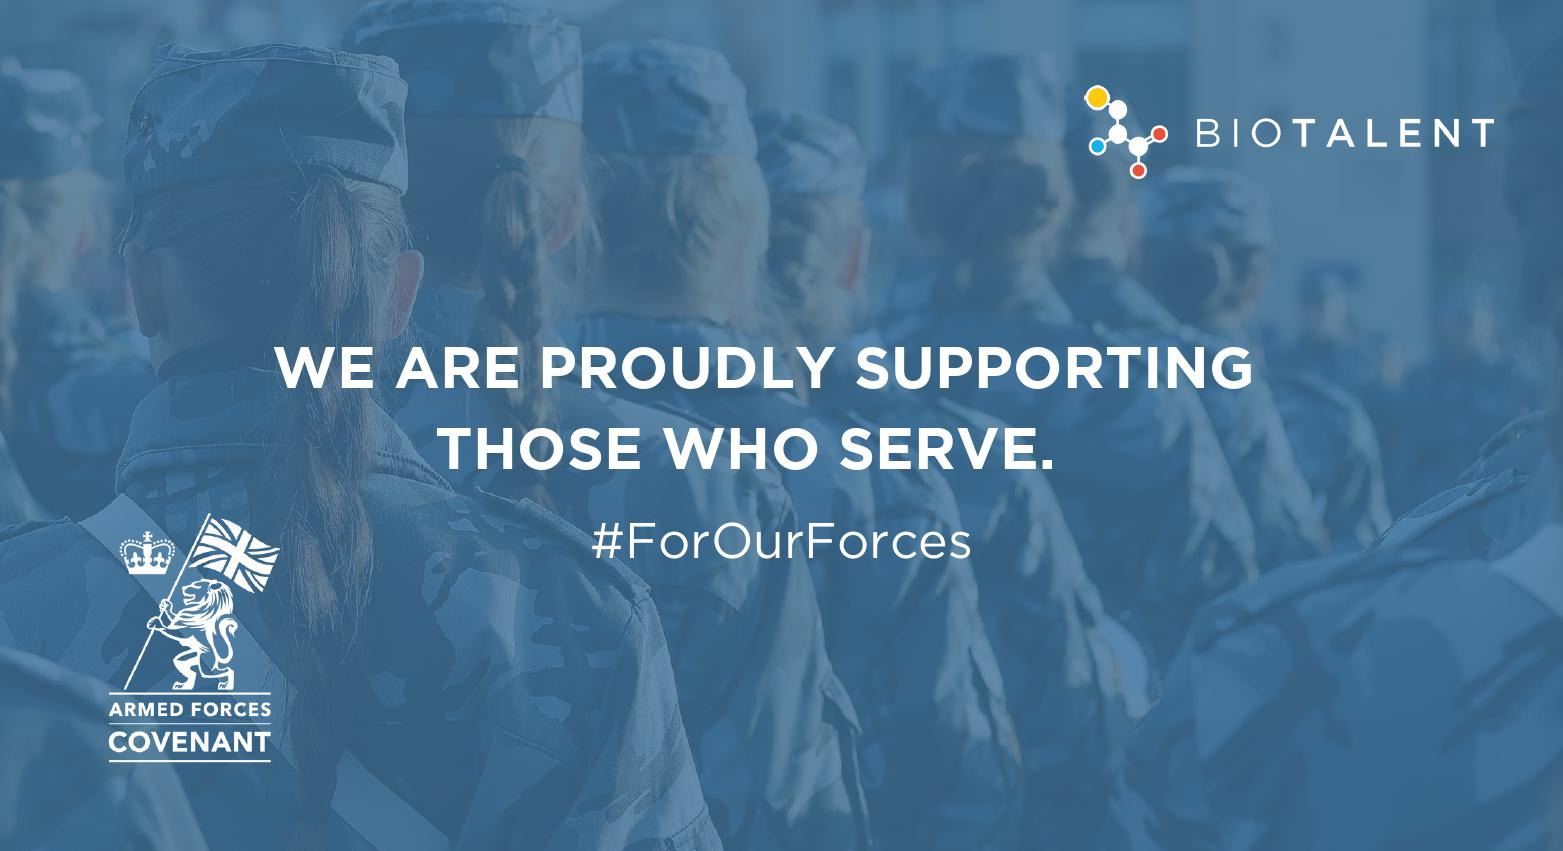 We have signed the Armed Forces Corporate Covenant